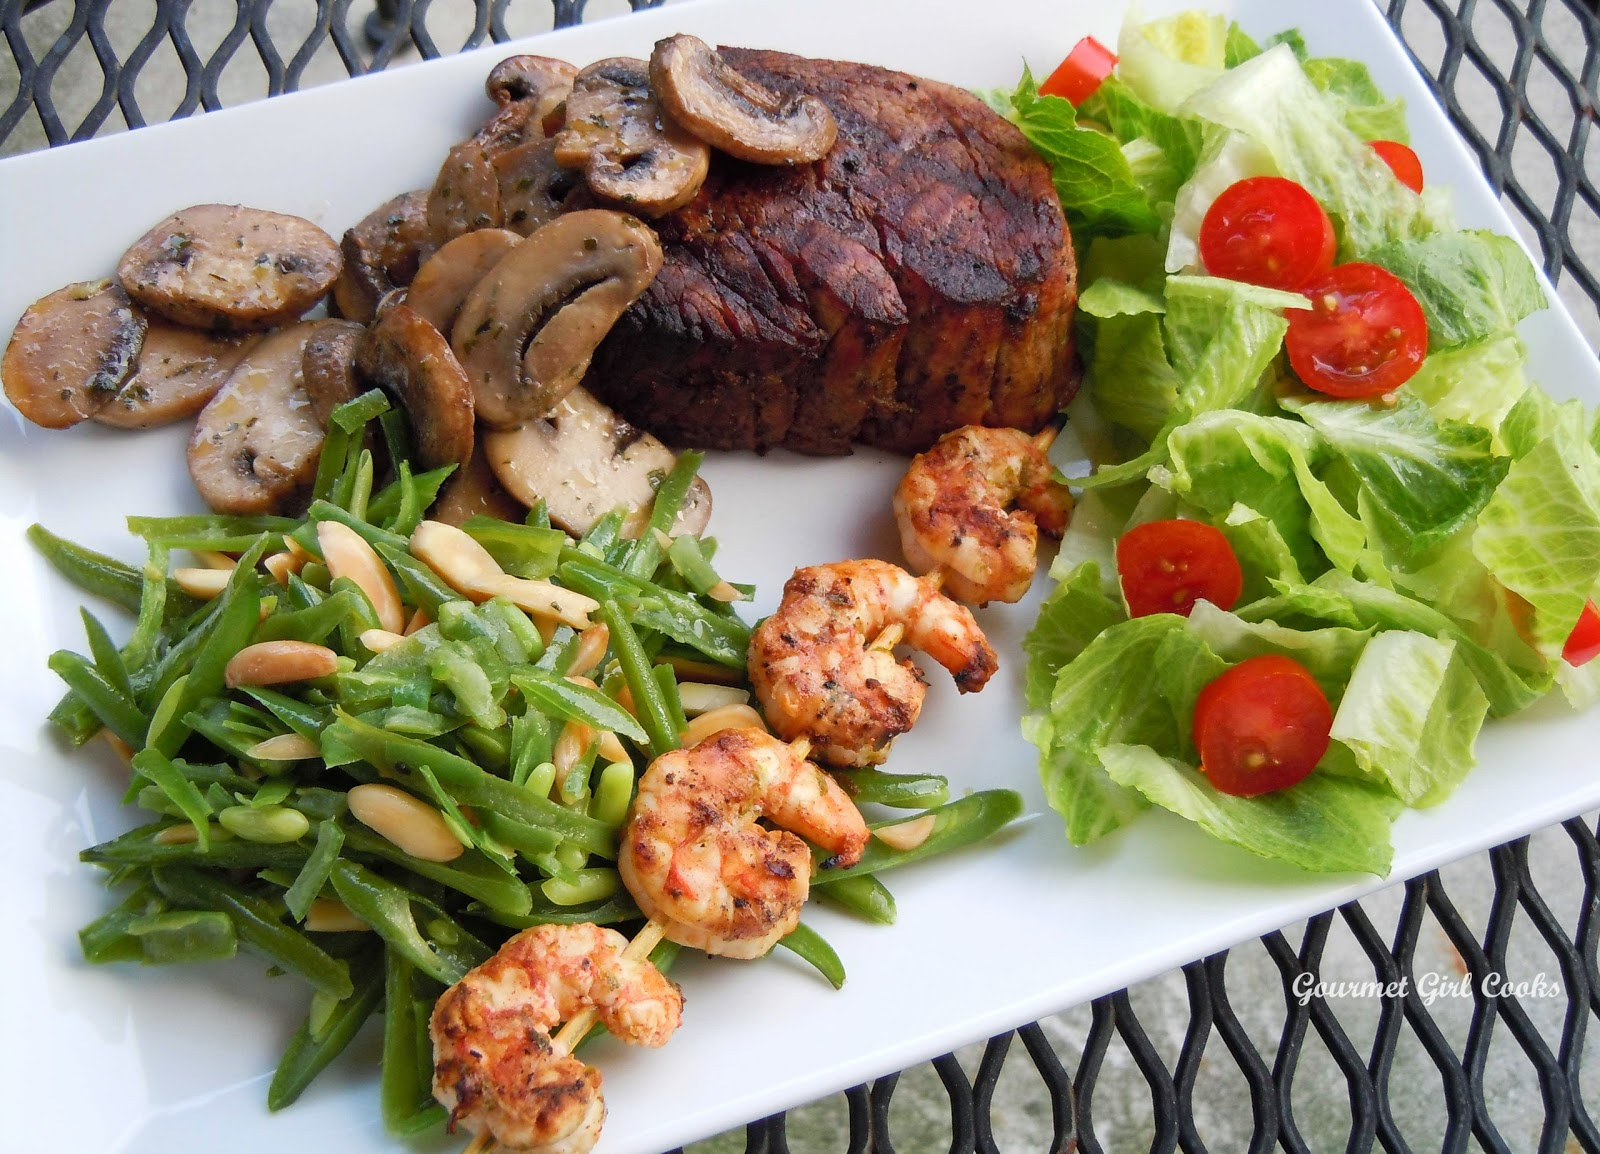 Surf And Turf Dinner Party Ideas Part - 34: Happy Fatheru0027s Day -- Surf U0026 Turf Dinner (Filet Mignon U0026 Chipotle Lime  Shrimp Kabobs)